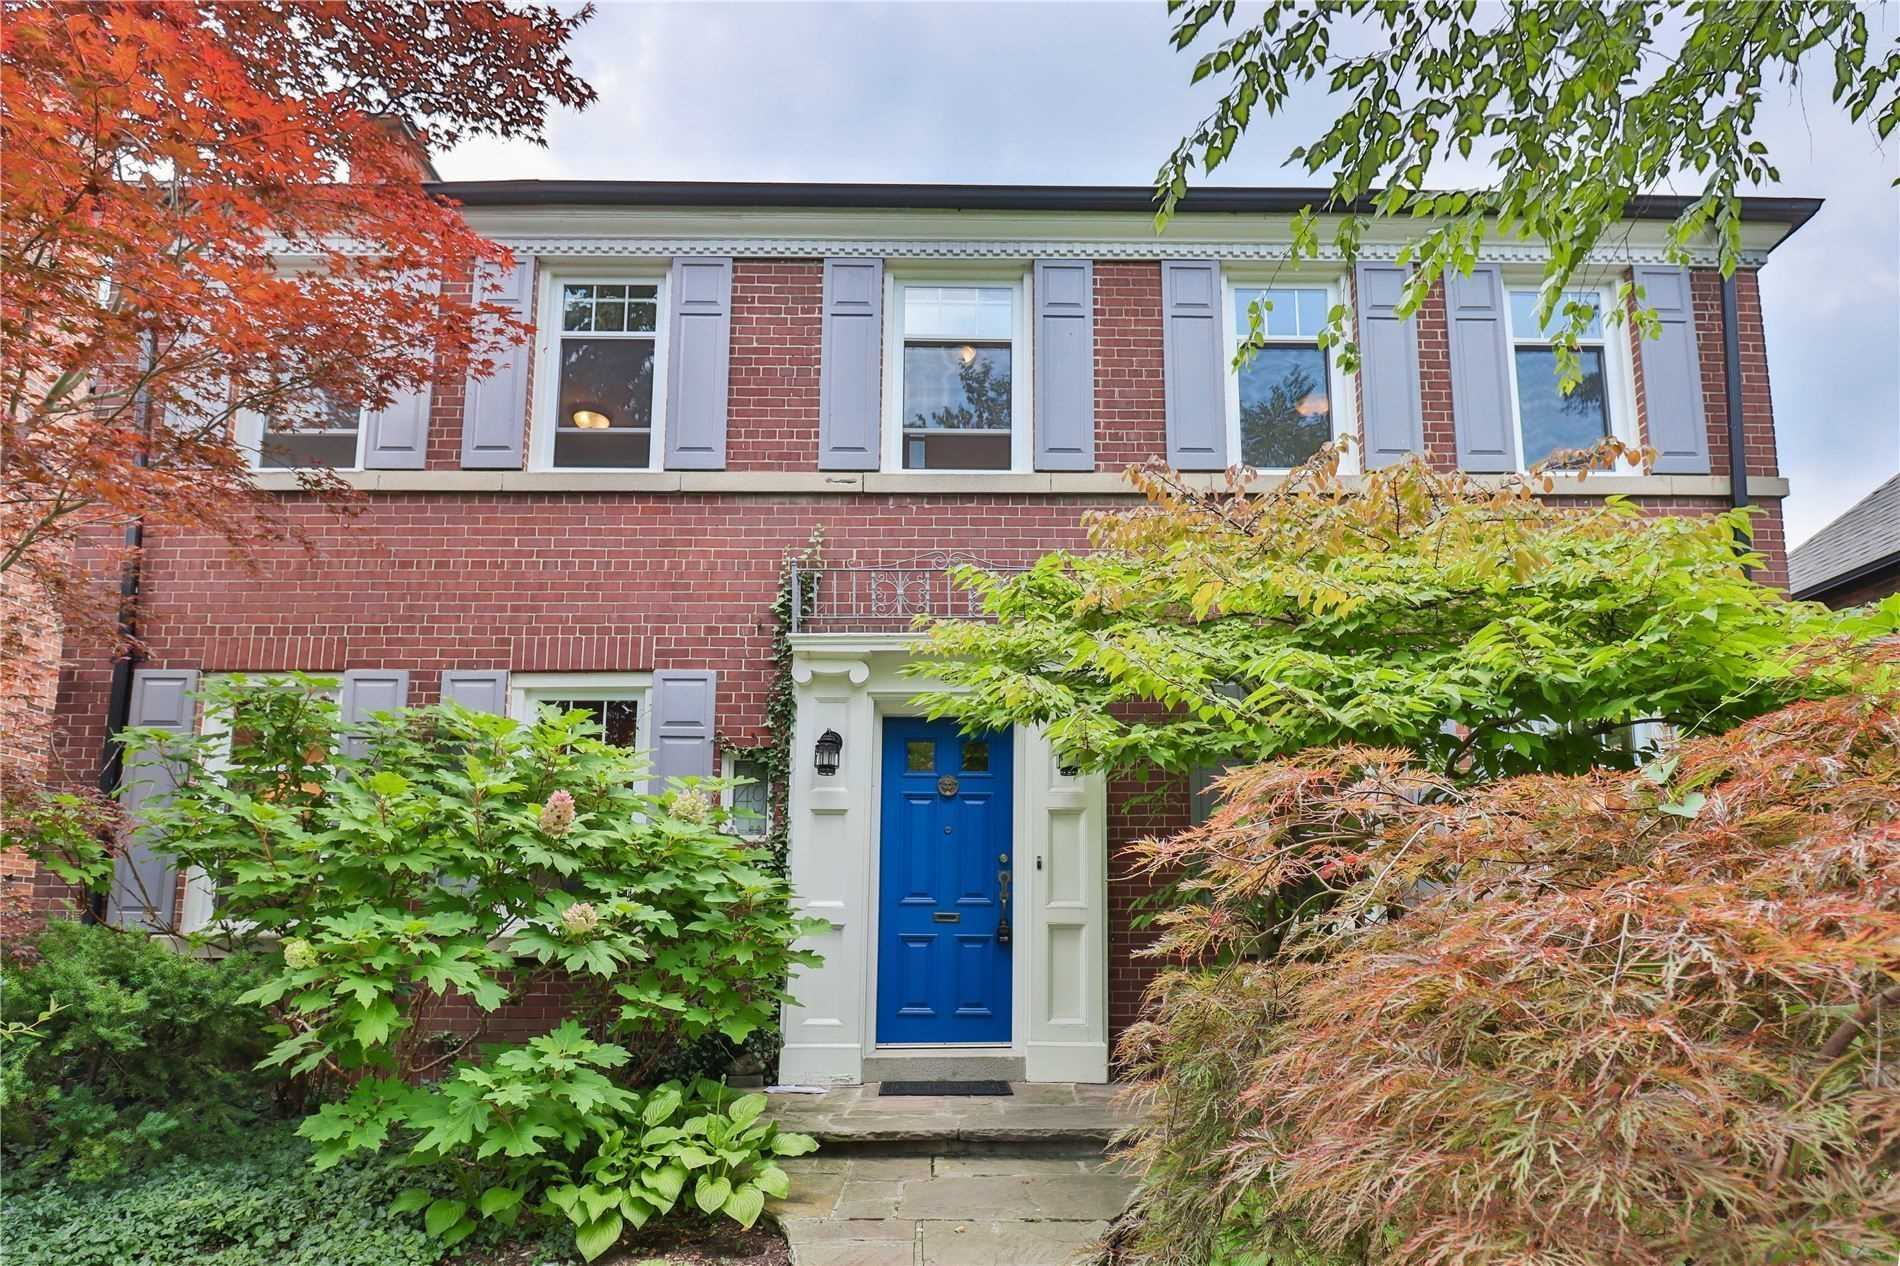 Detached house For Lease In Toronto - 49 Hillcrest Dr, Toronto, Ontario, Canada M6G2E2 , 4 Bedrooms Bedrooms, ,4 BathroomsBathrooms,Detached,For Lease,Hillcrest